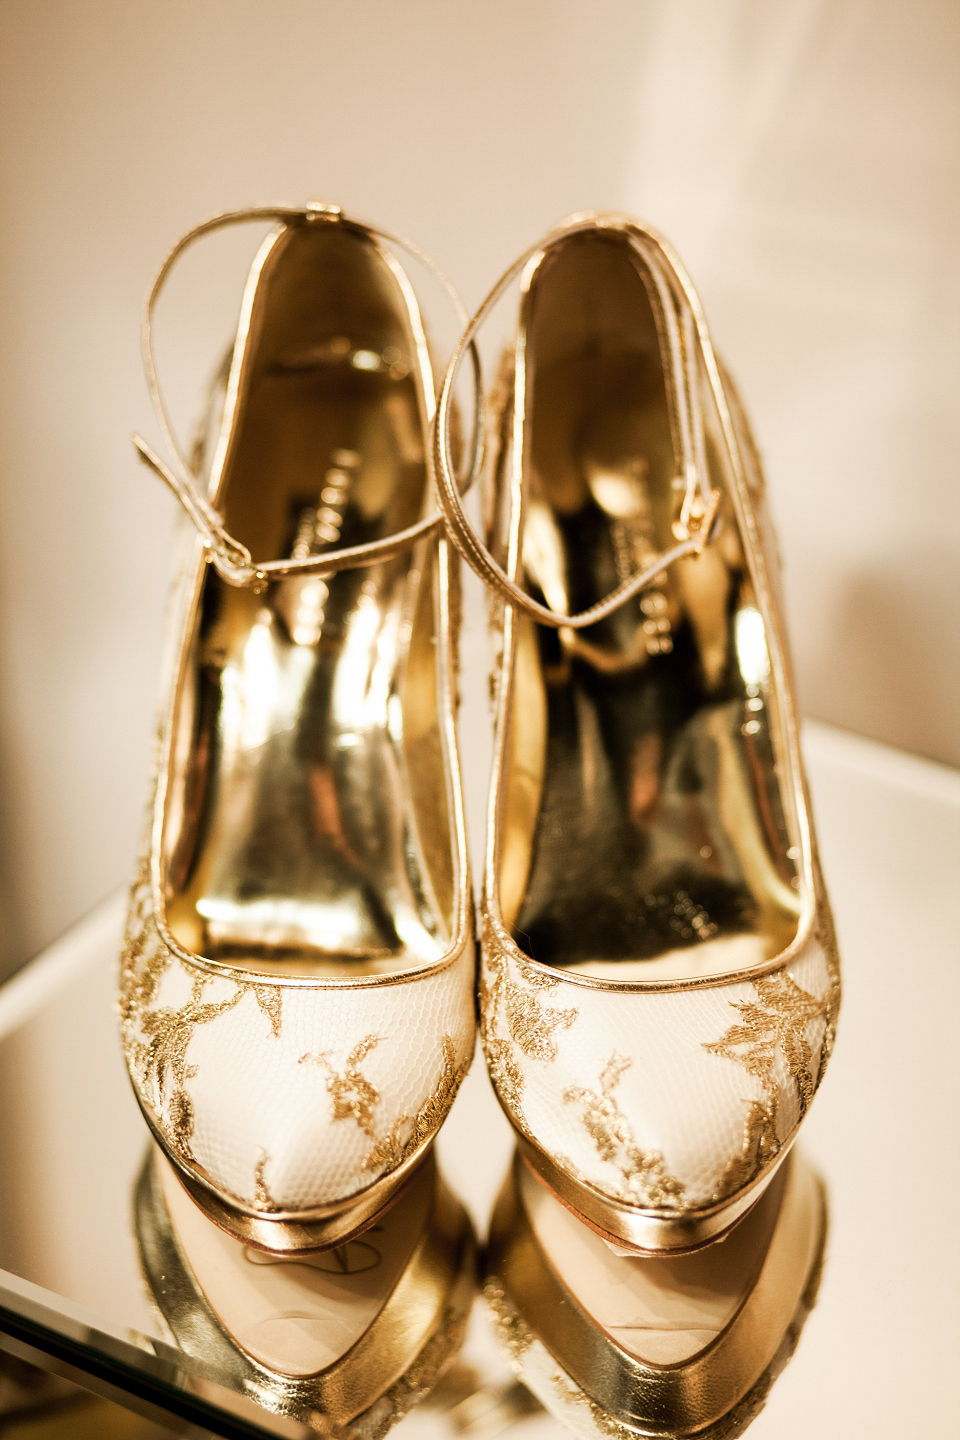 Freya Rose wedding shoes at The White Gallery, London, April 2014